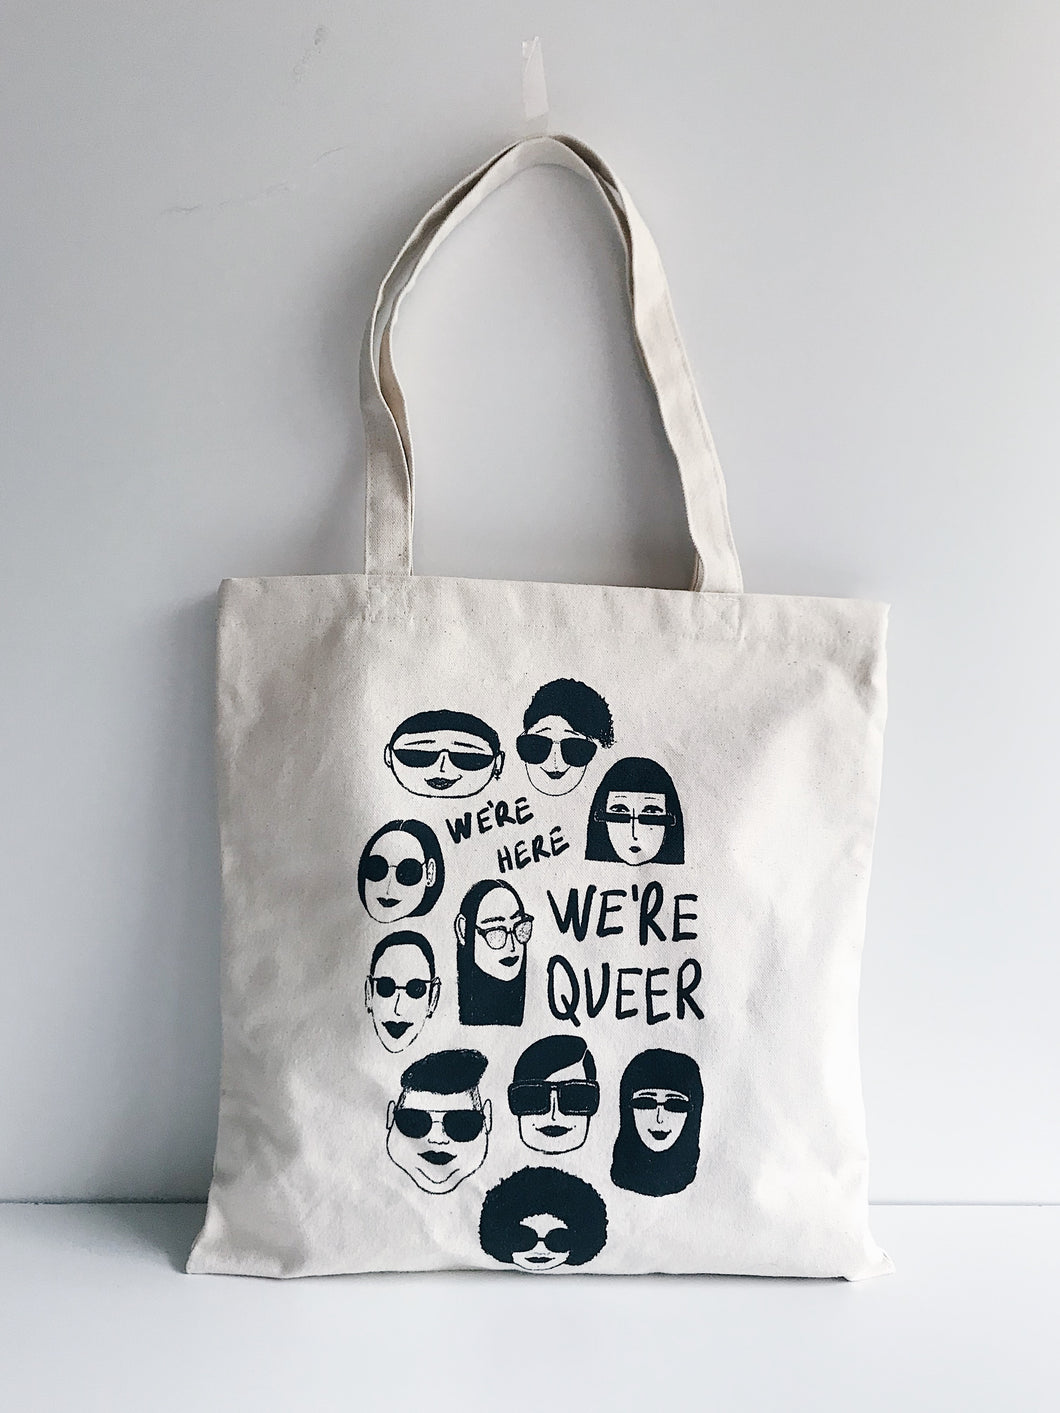 We're here we're queer - Sac naturel sérigraphié en coton bio